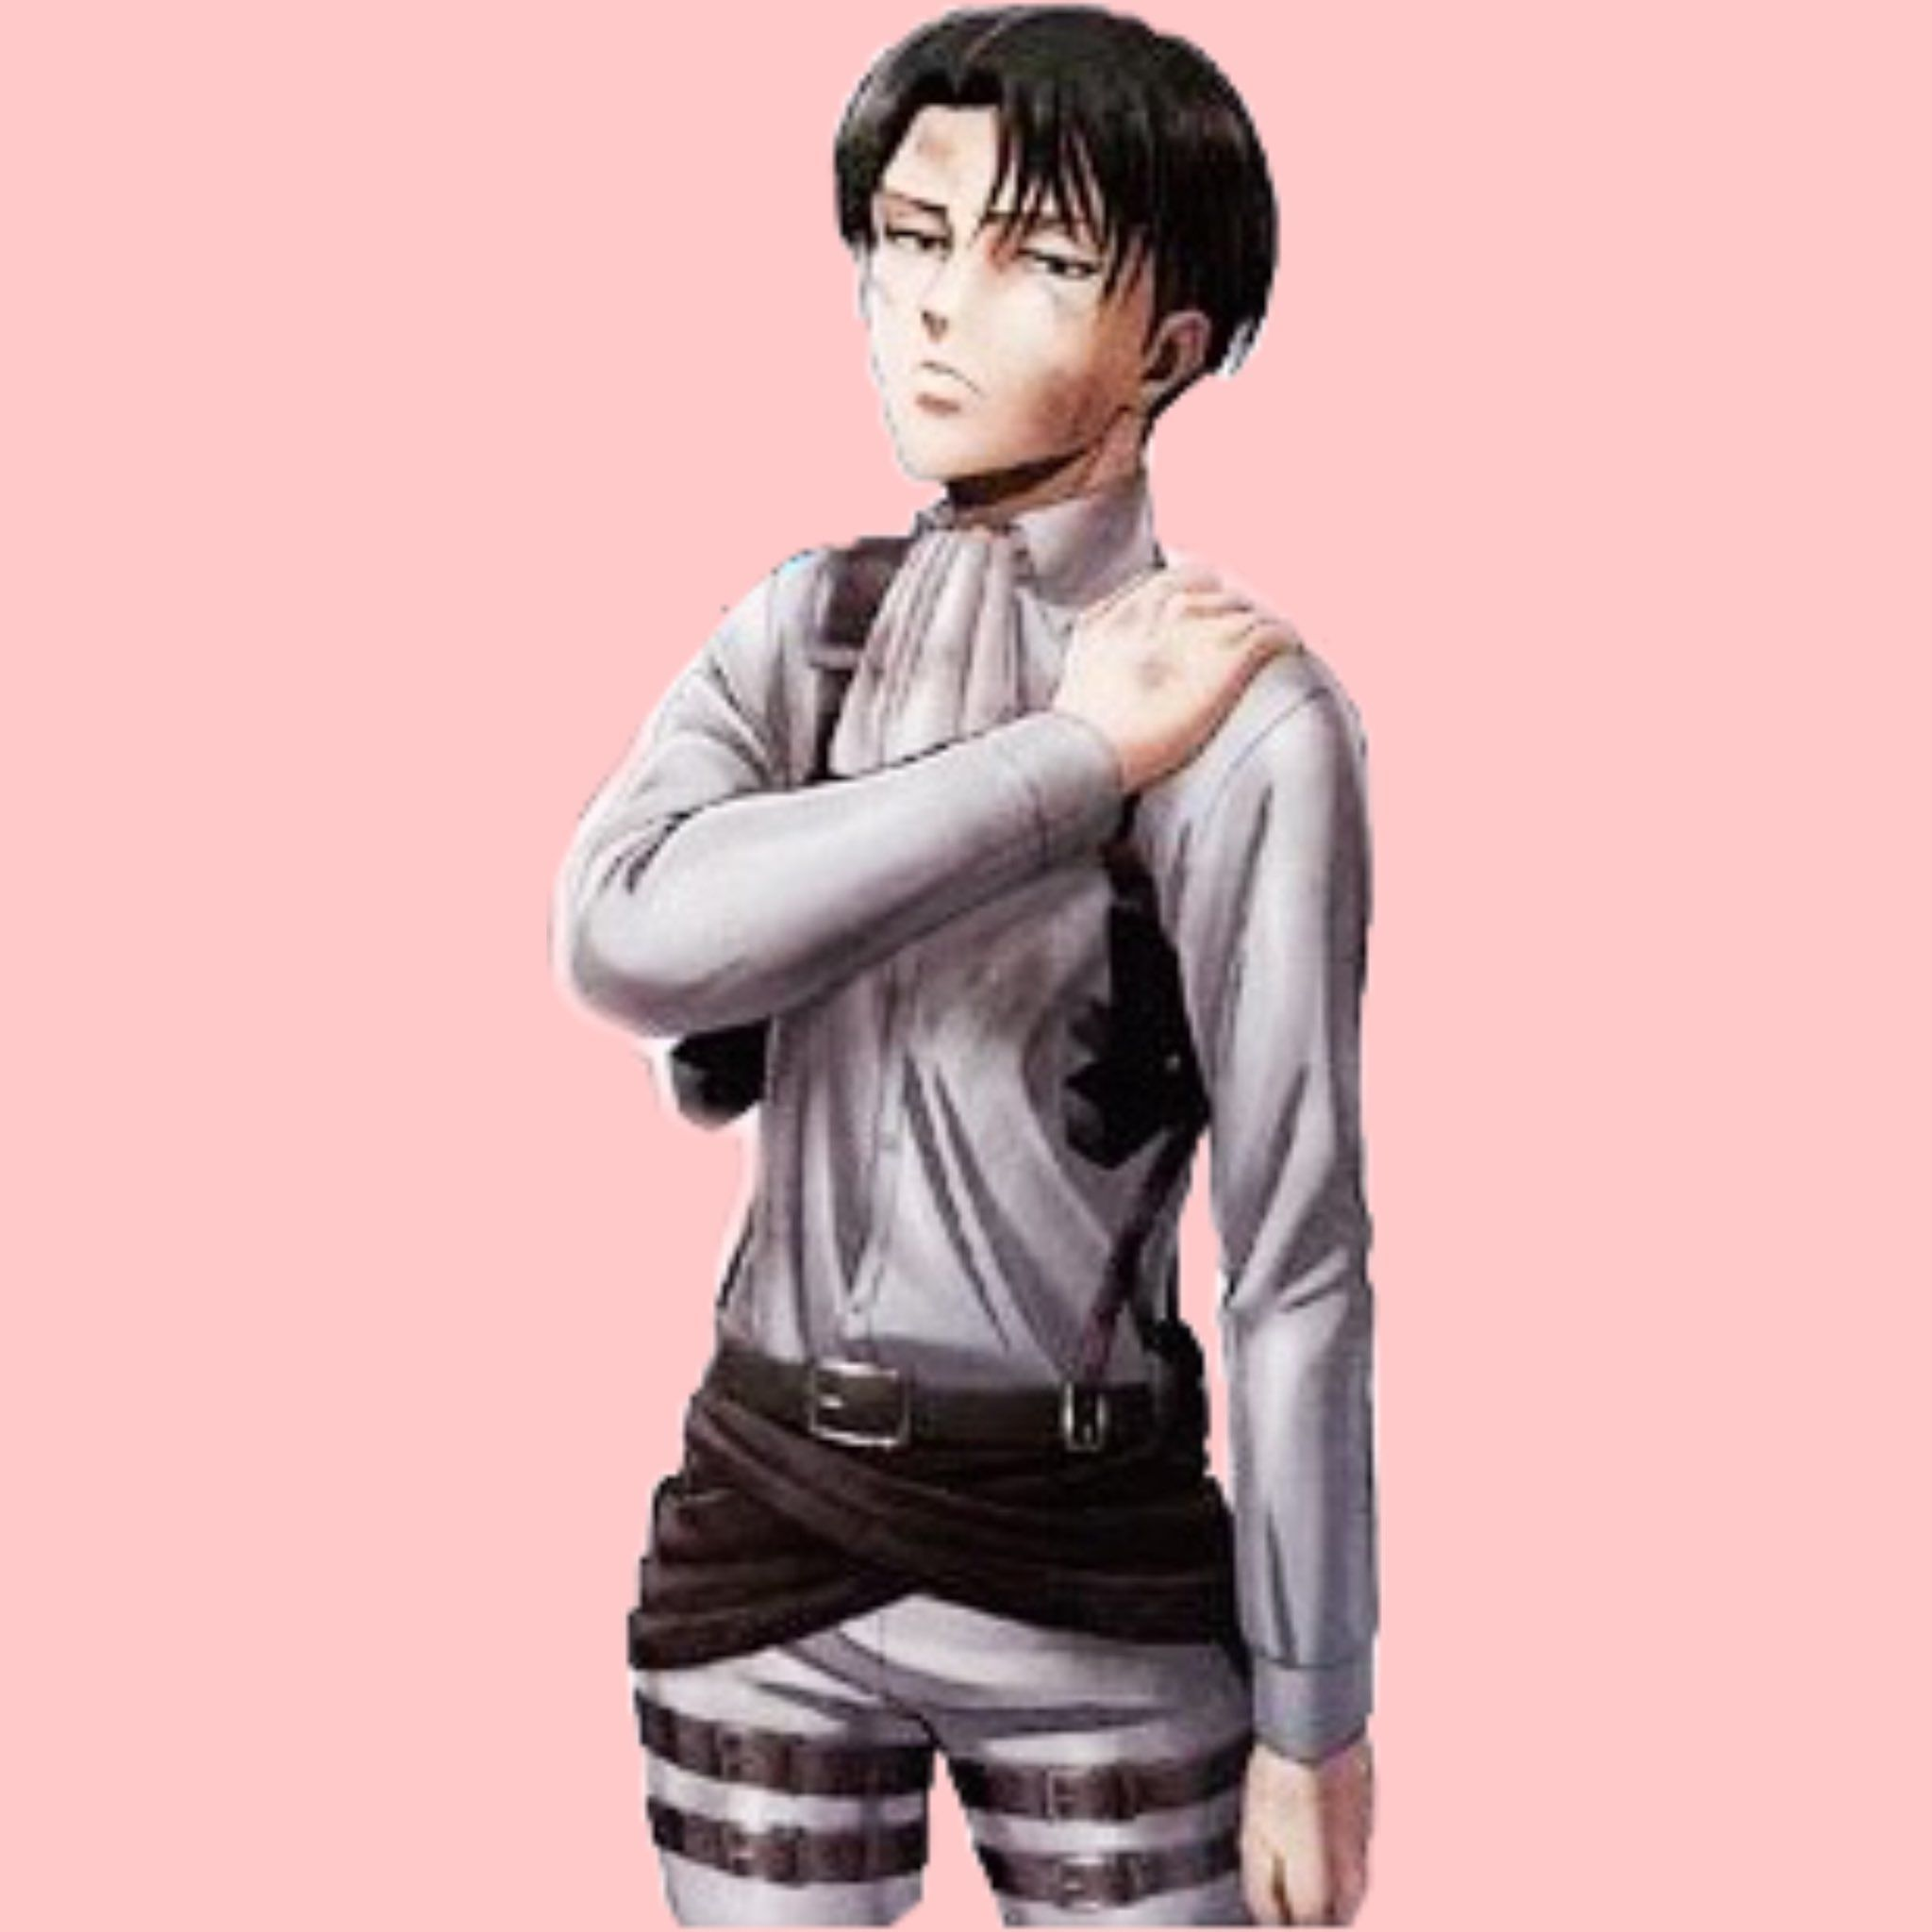 Pin by Shem on Levi Ackerman♥️ in 2020 Attack on titan